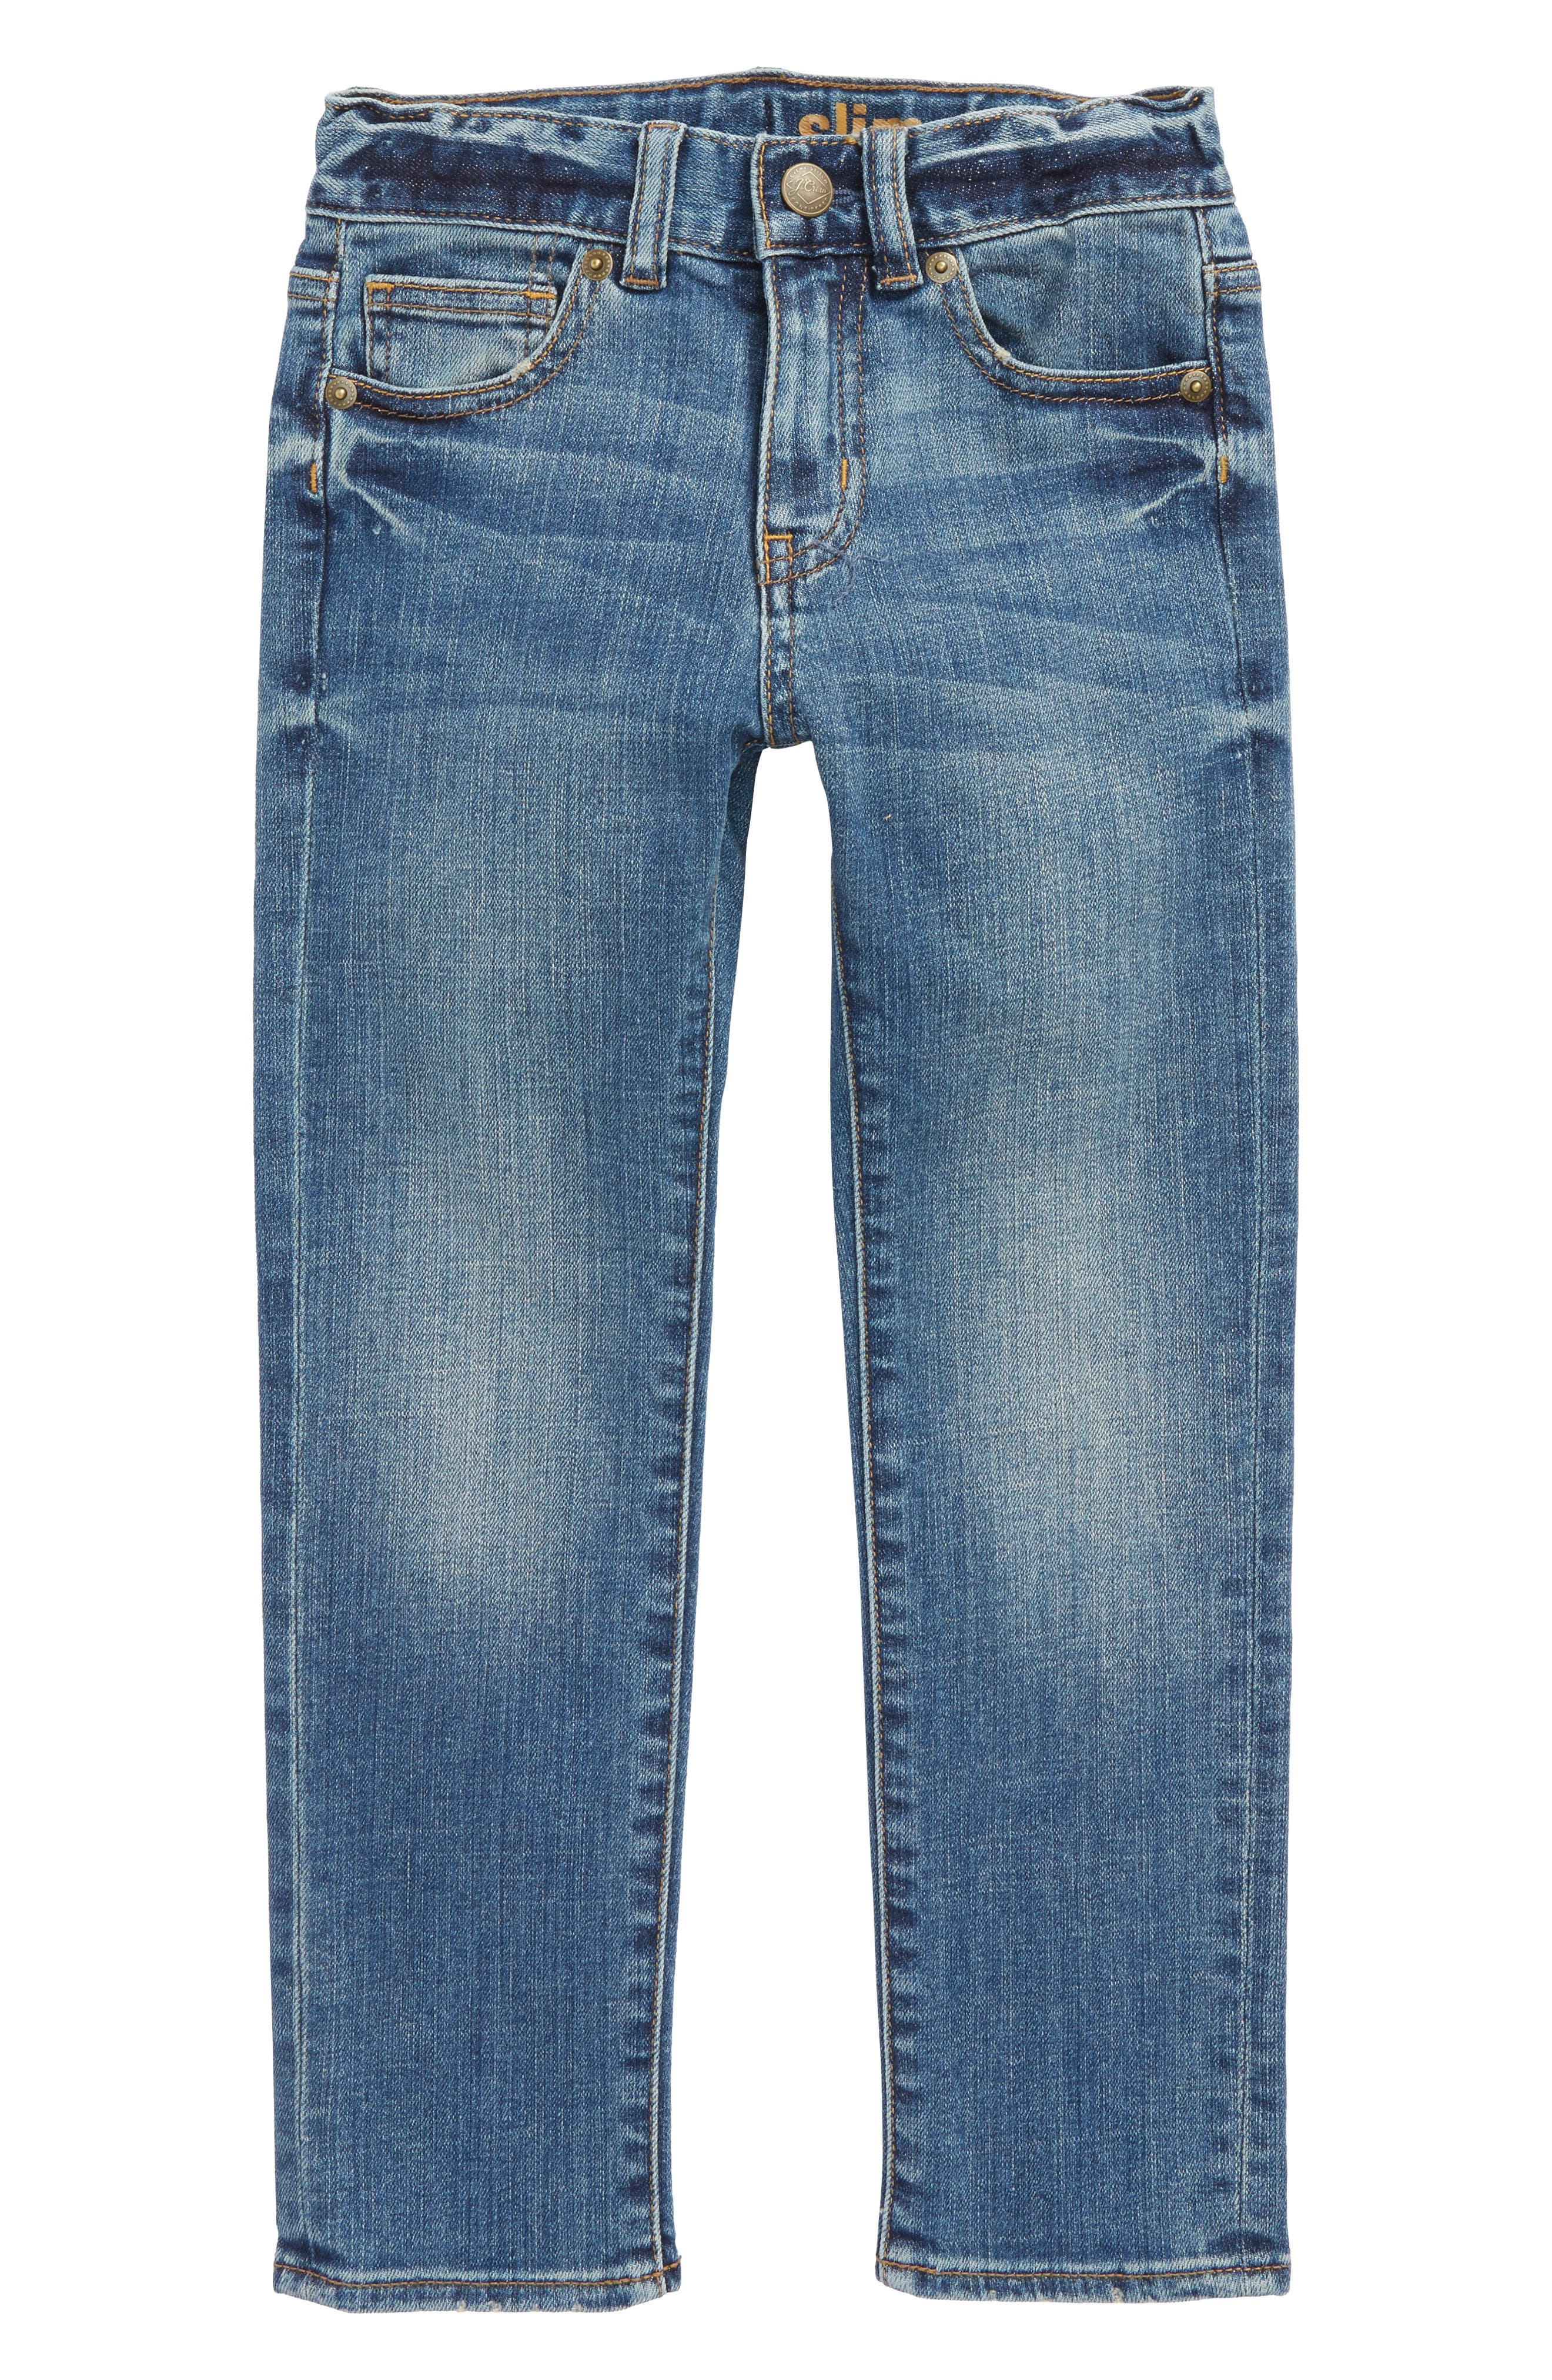 Slim Fit Rugged Wash Jeans,                         Main,                         color, 400